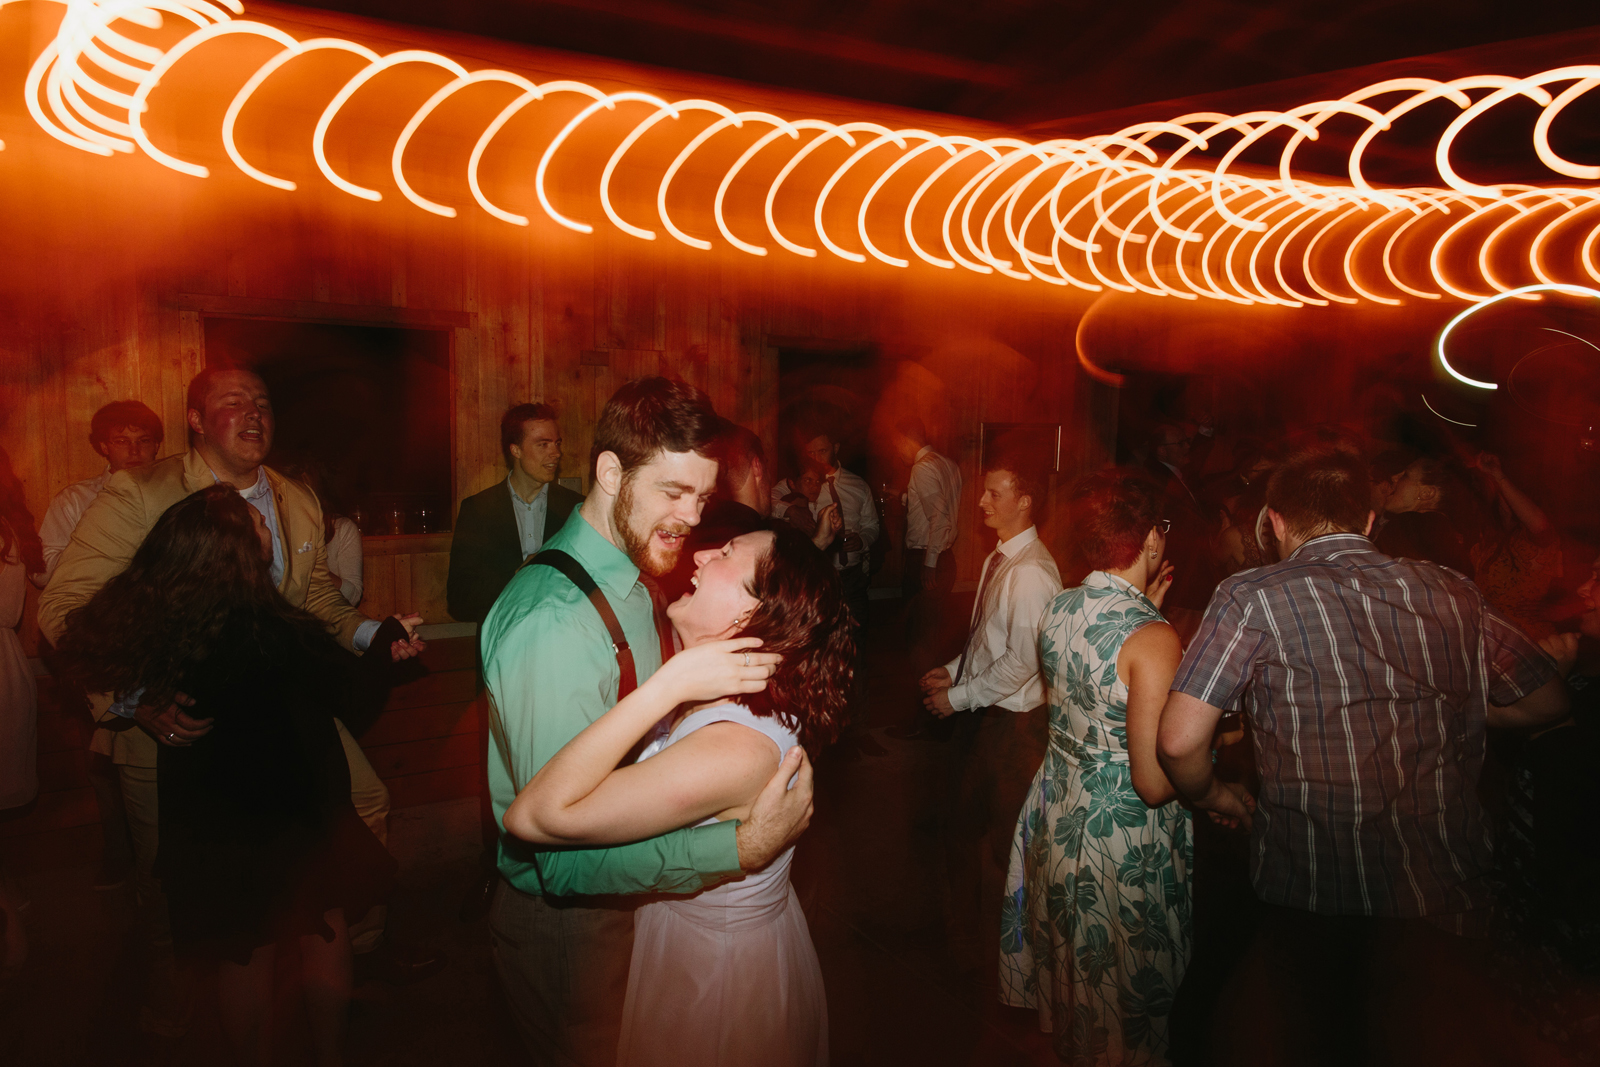 Wedding guests dance on the dance floor during a wedding reception at Bridal Veil Lakes in Corbett, Oregon